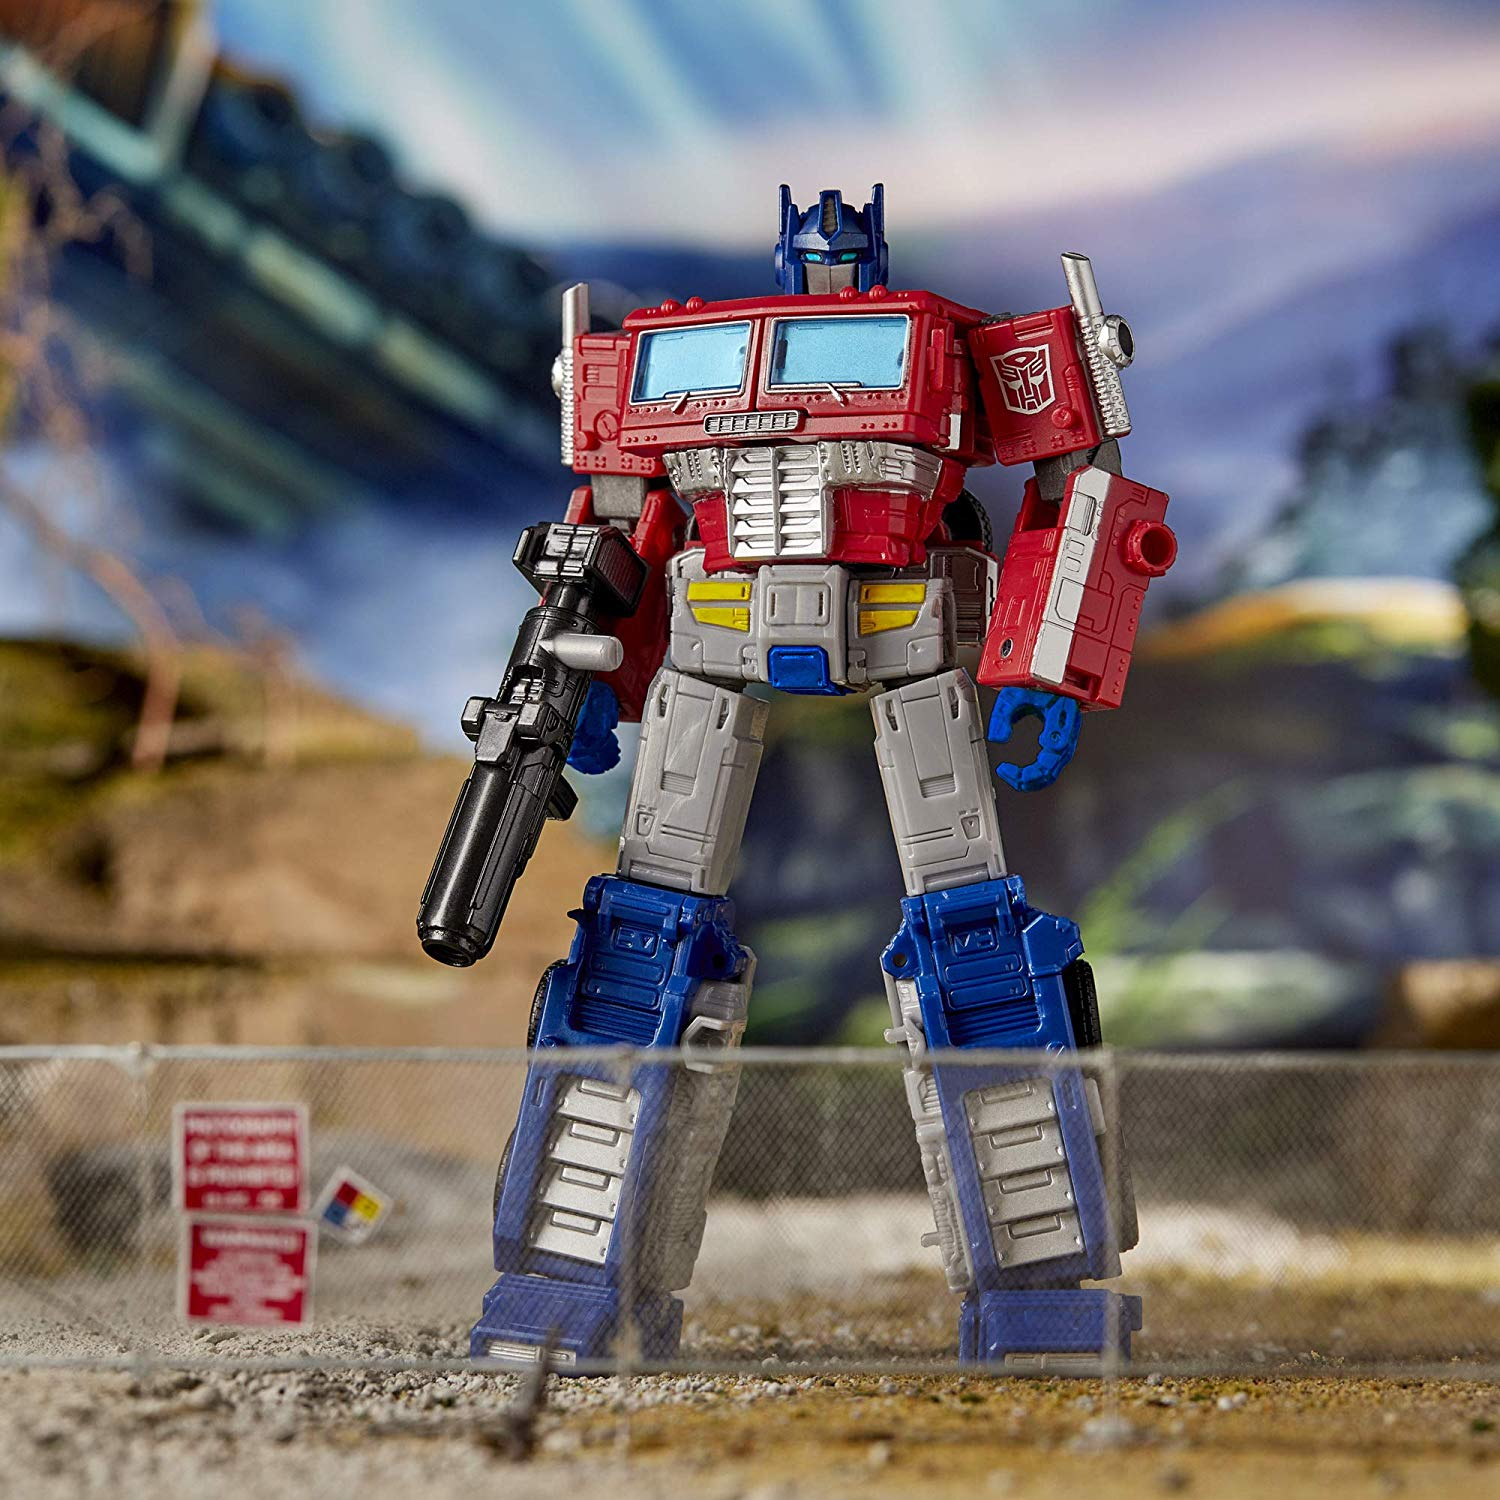 Transformers - War for Cybertron: EARTHRISE - Optimus Prime Action Figure (WFC-E11 - E7166)